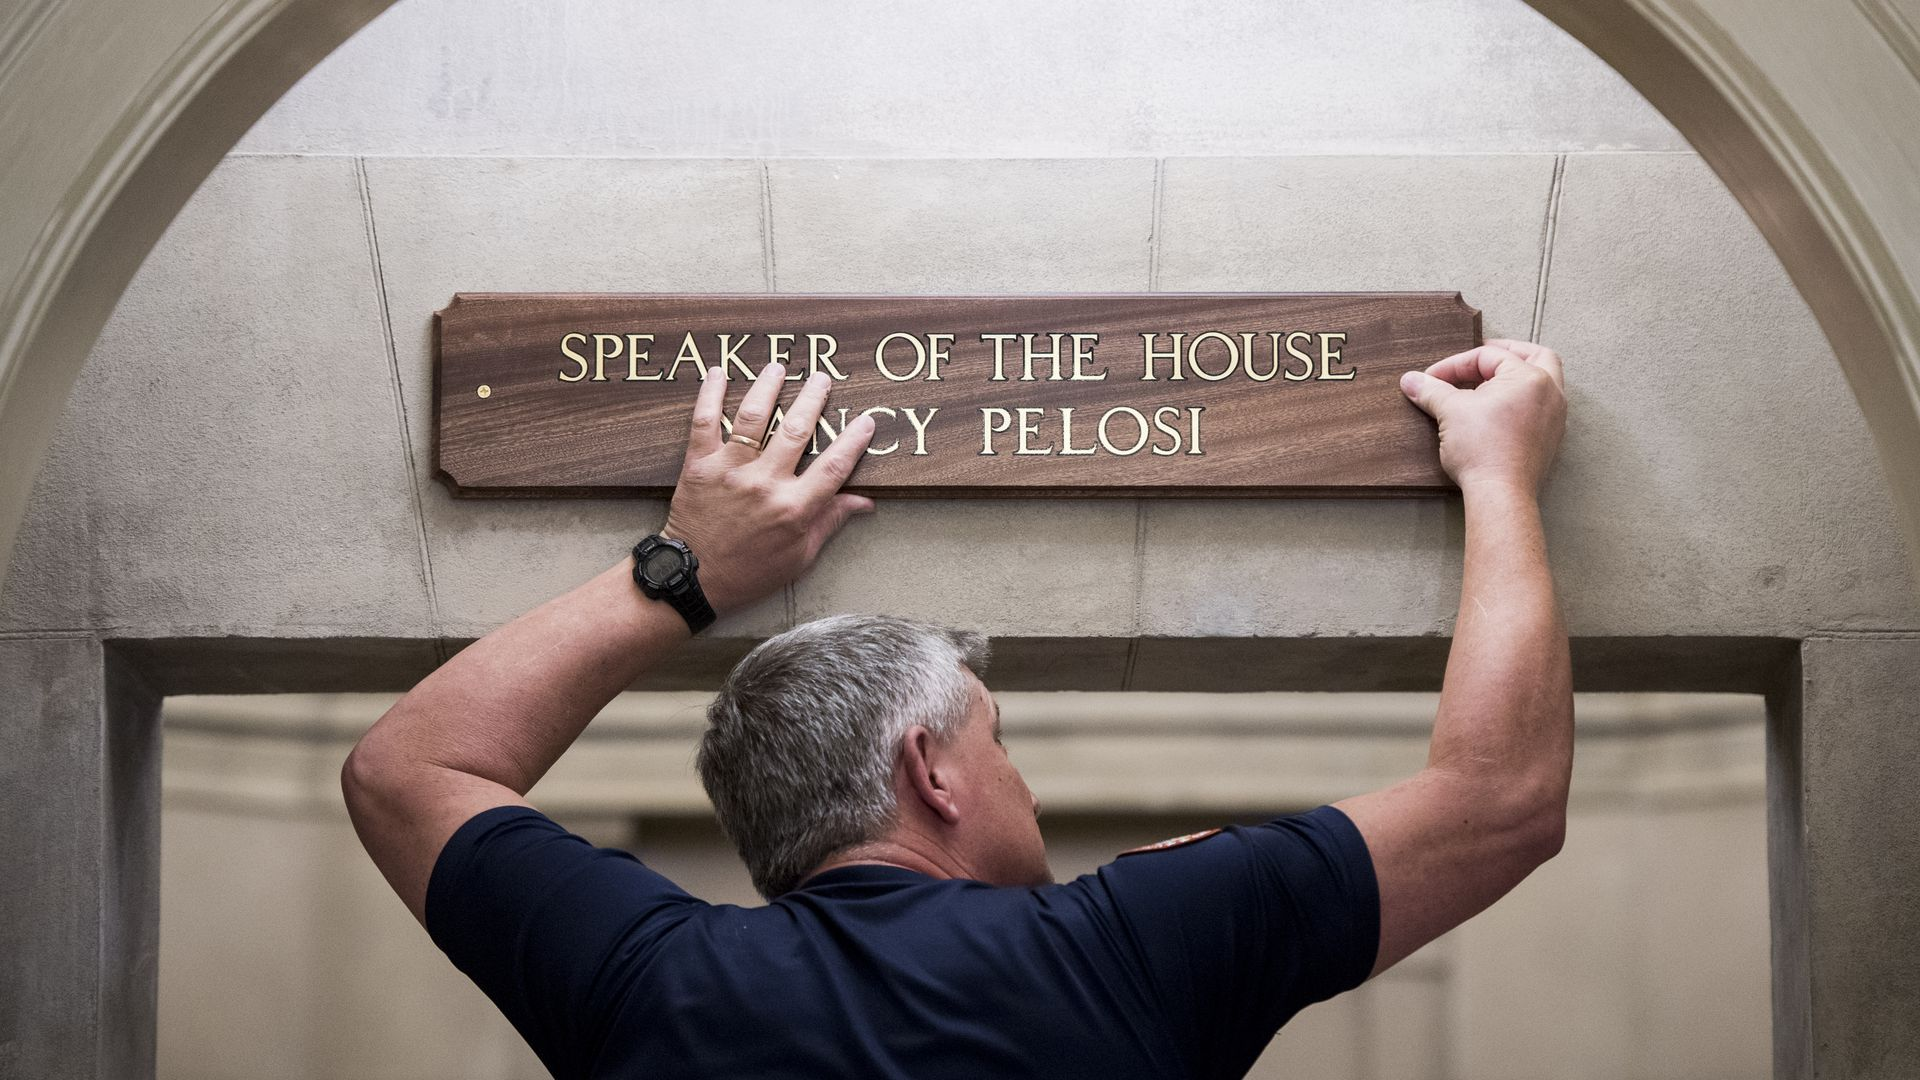 Worker puts up Nancy Pelosi Speaker of the House plaque.